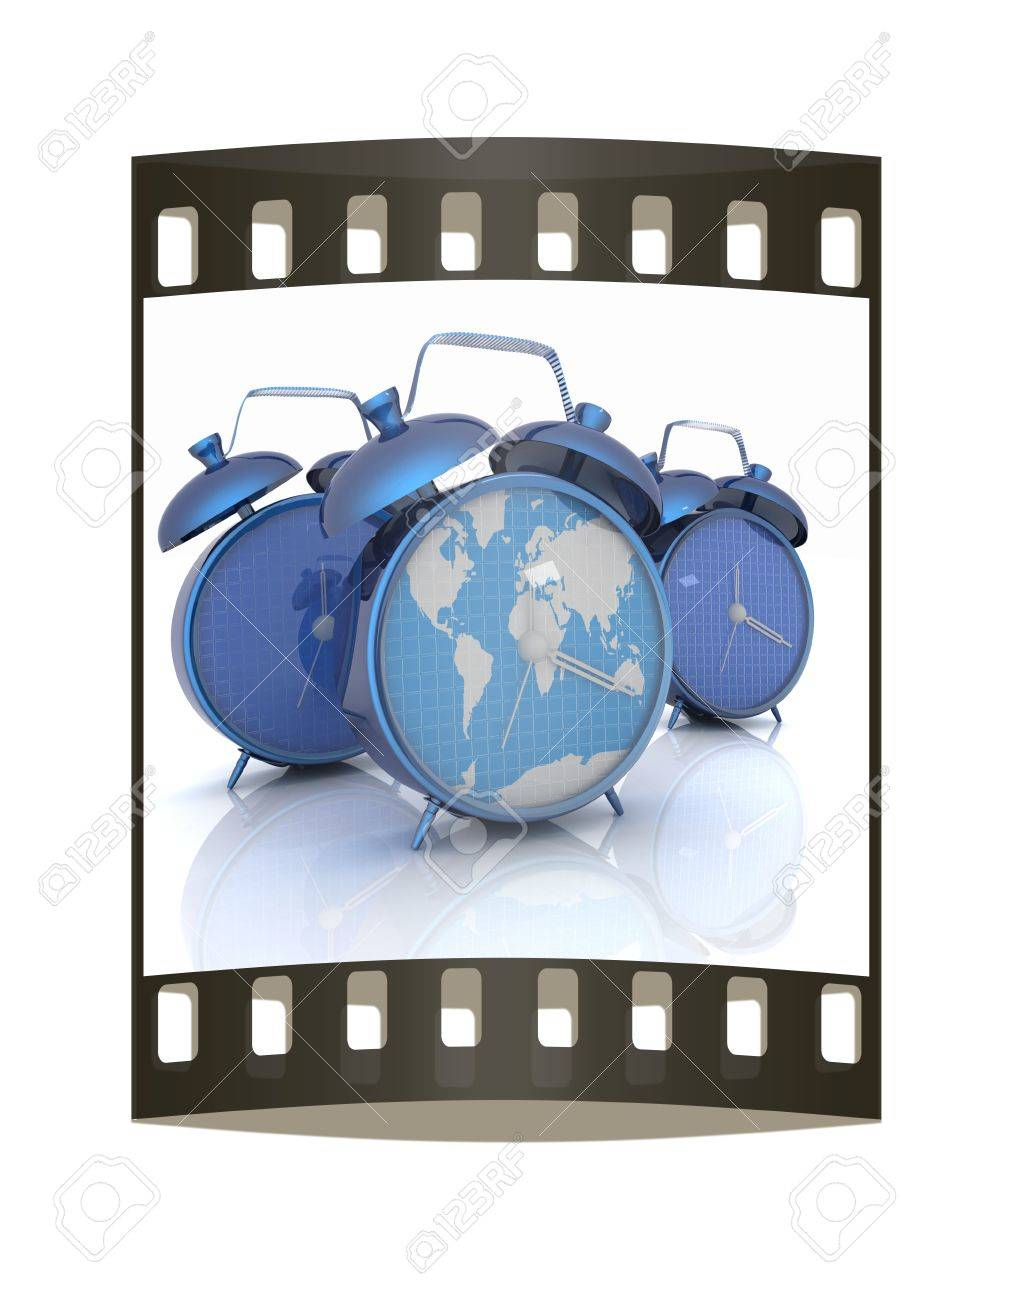 Alarm clock of world map and alarm clocks the film strip stock alarm clock of world map and alarm clocks the film strip stock photo 39829970 gumiabroncs Images